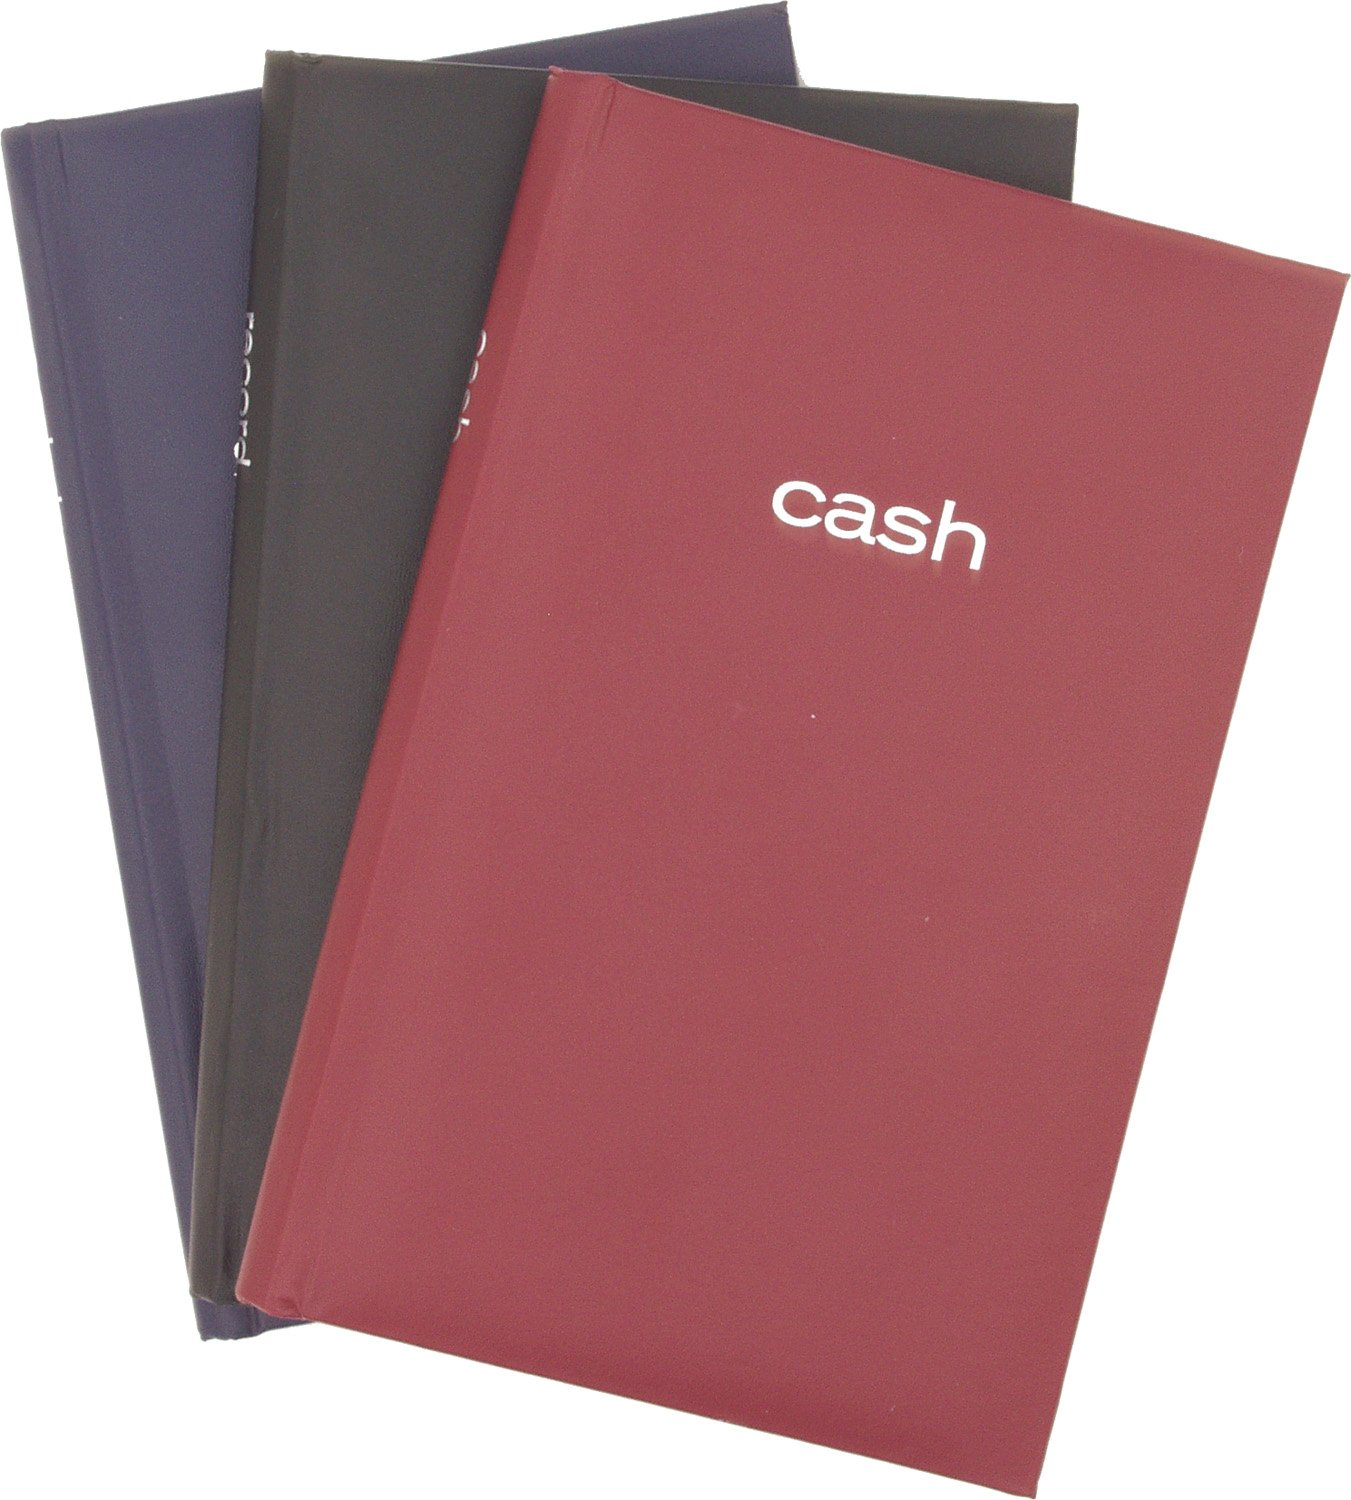 Mead 7.88 x 5 Account Book, Assorted (64582) Assorted (64582) Jensen (Home Improvement)